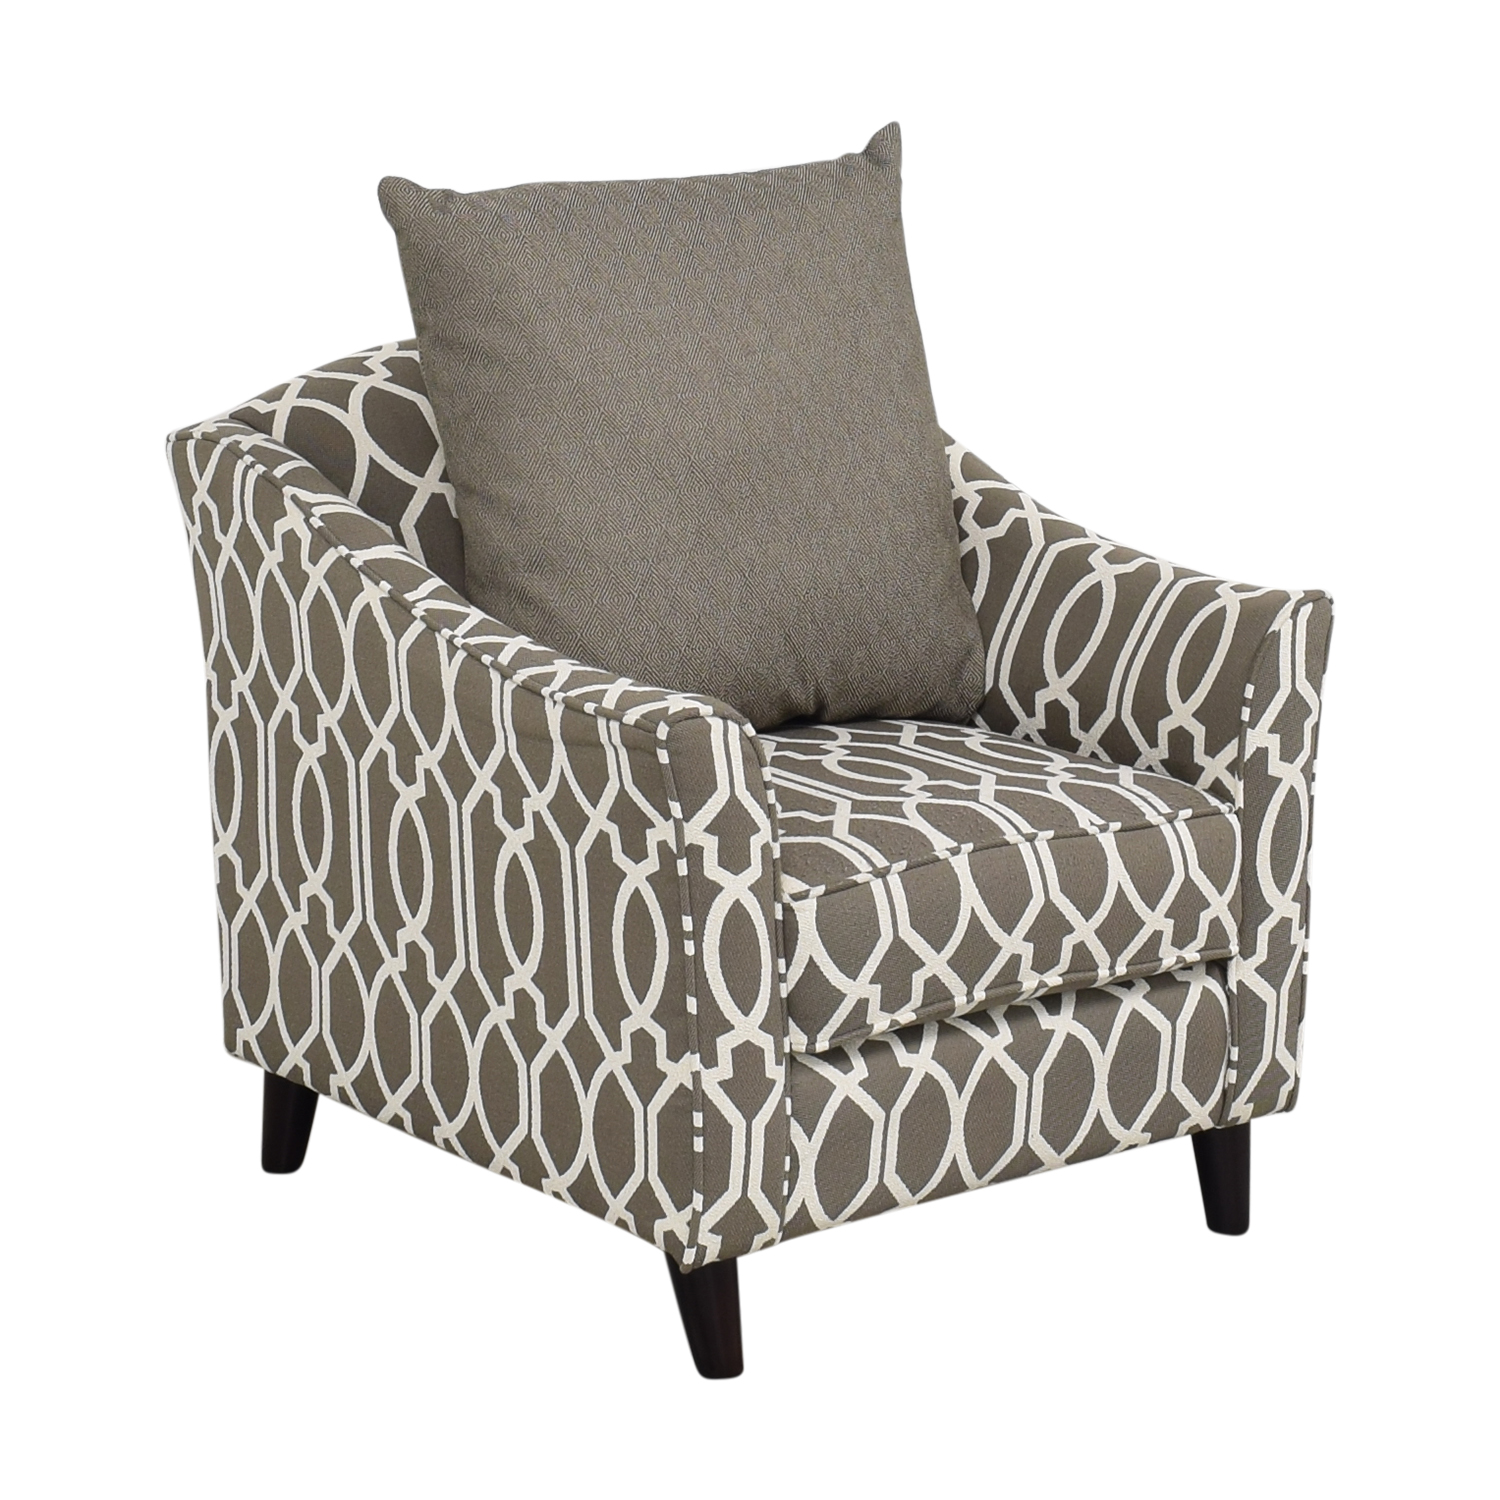 Raymour & Flanigan Accent Chair sale